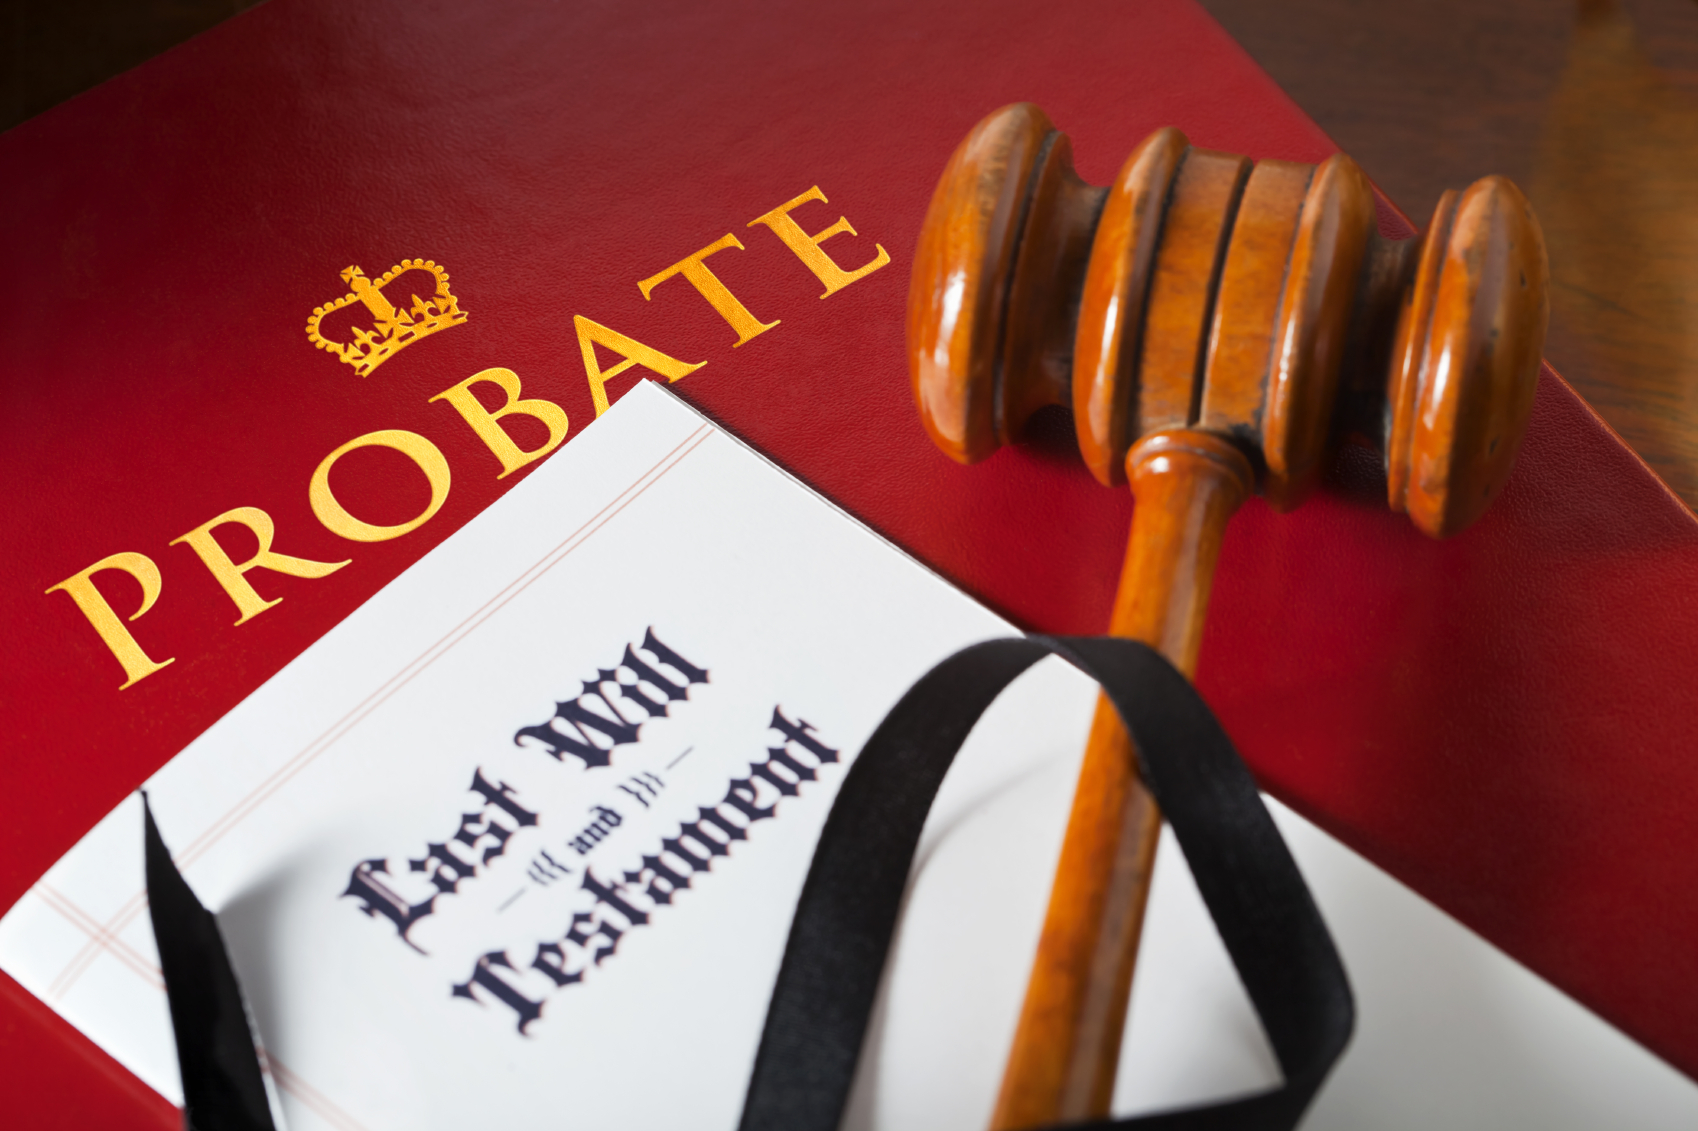 Protected: Need Probate & Family Law Help? Find a Reasonable Attorney